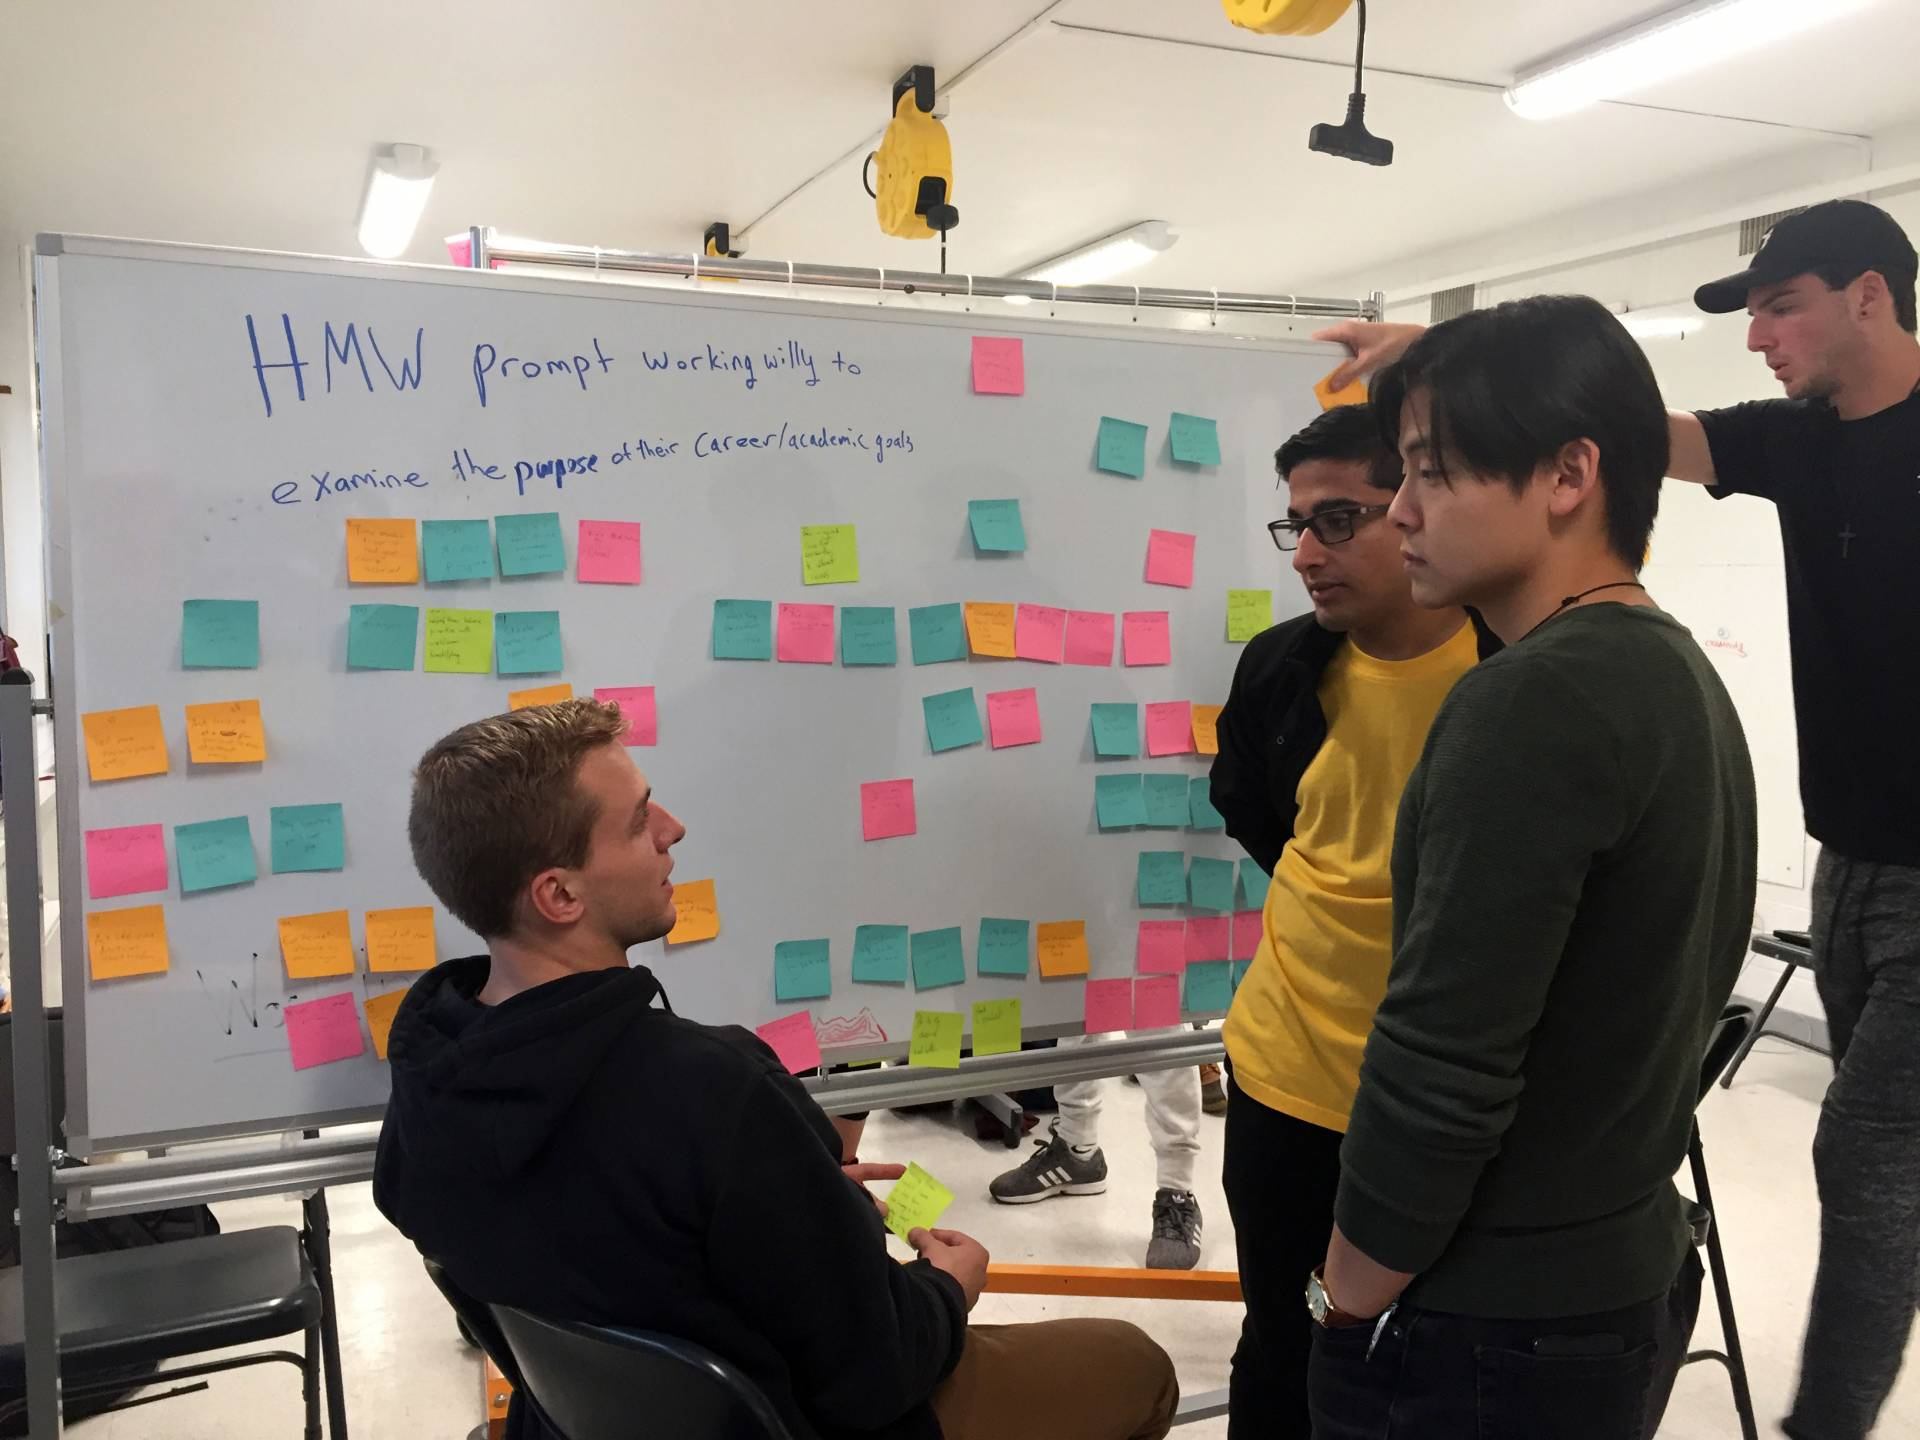 A team of students stands in front of a whiteboard covered in post-it notes